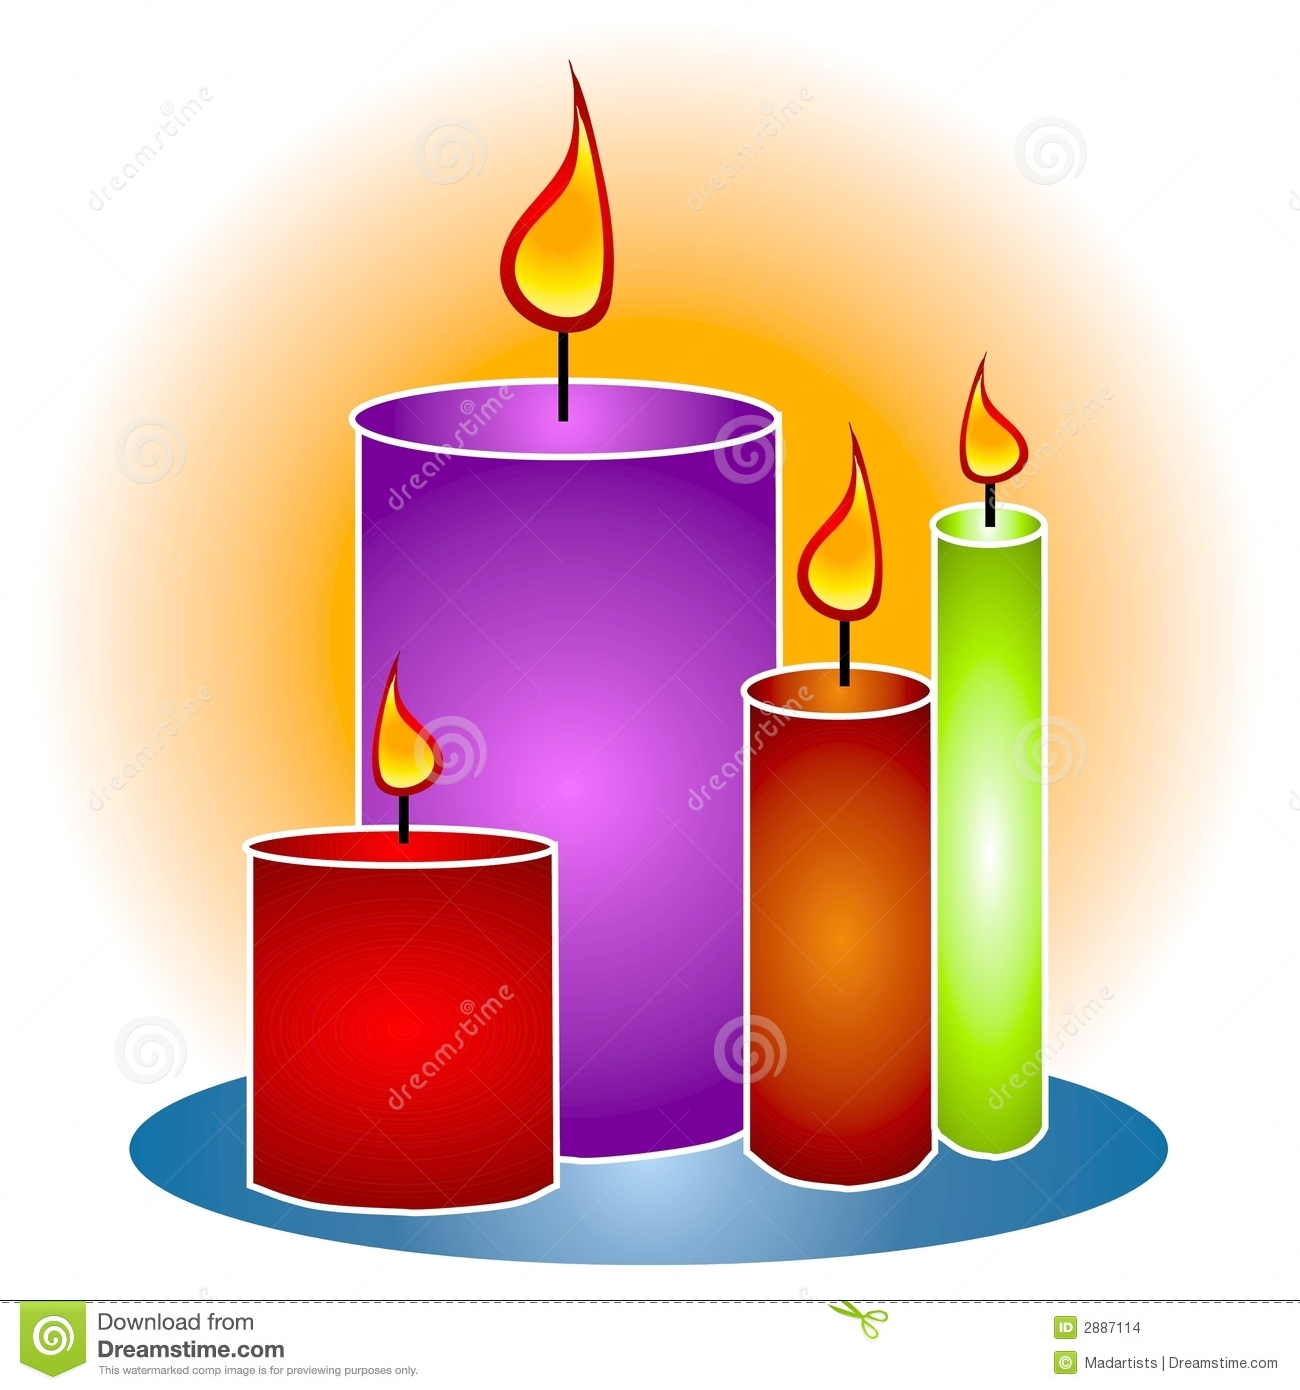 Candles clipart candle flame. Image panda free images